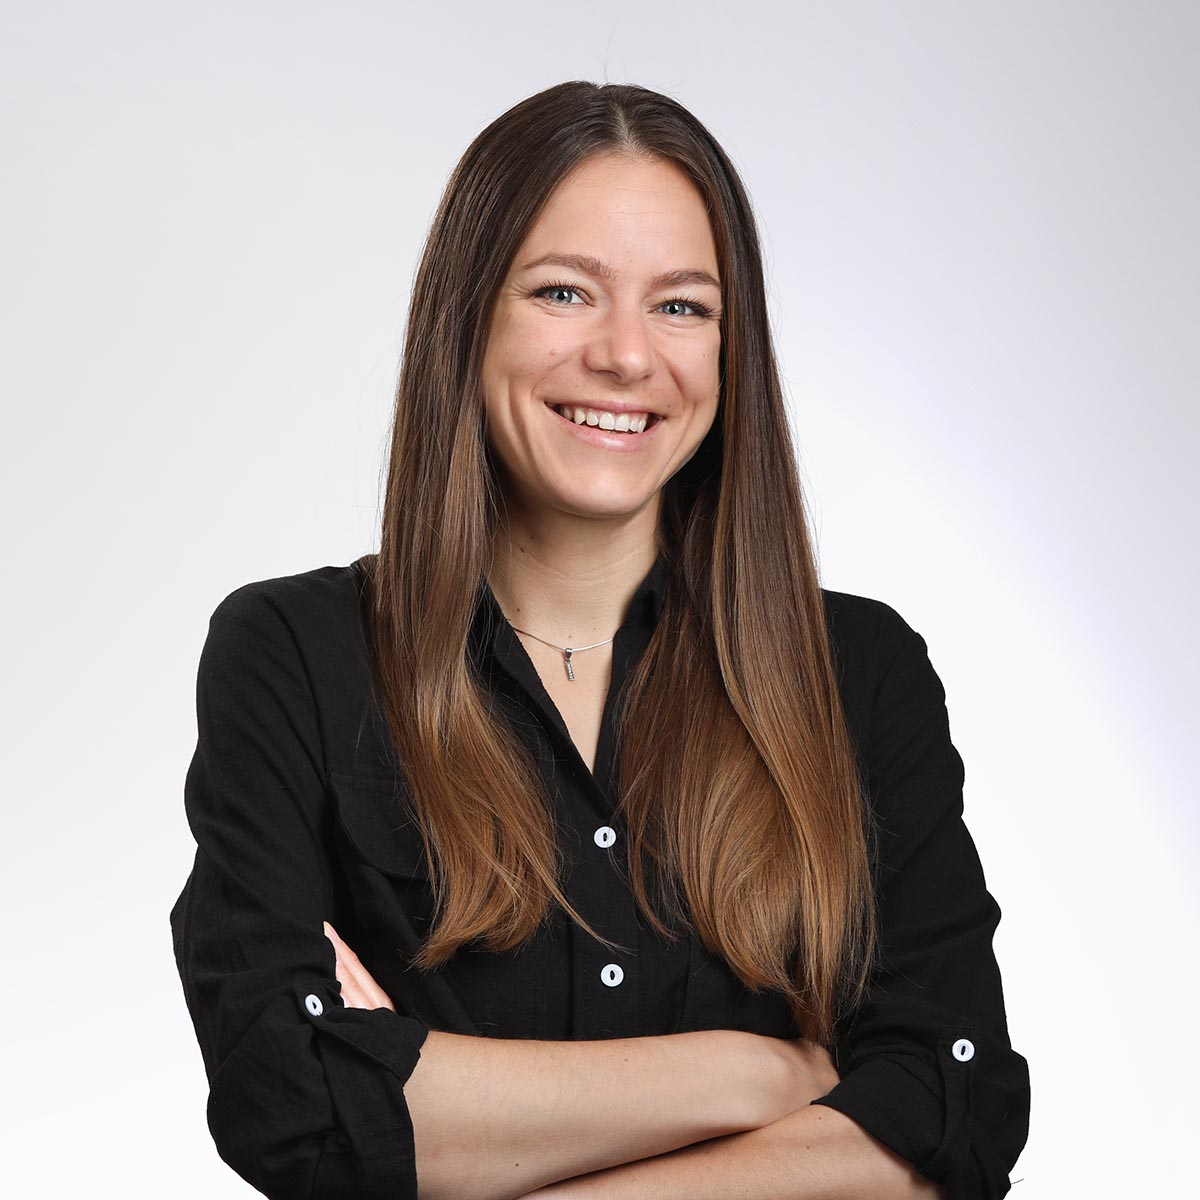 female casual silicon valley headshot